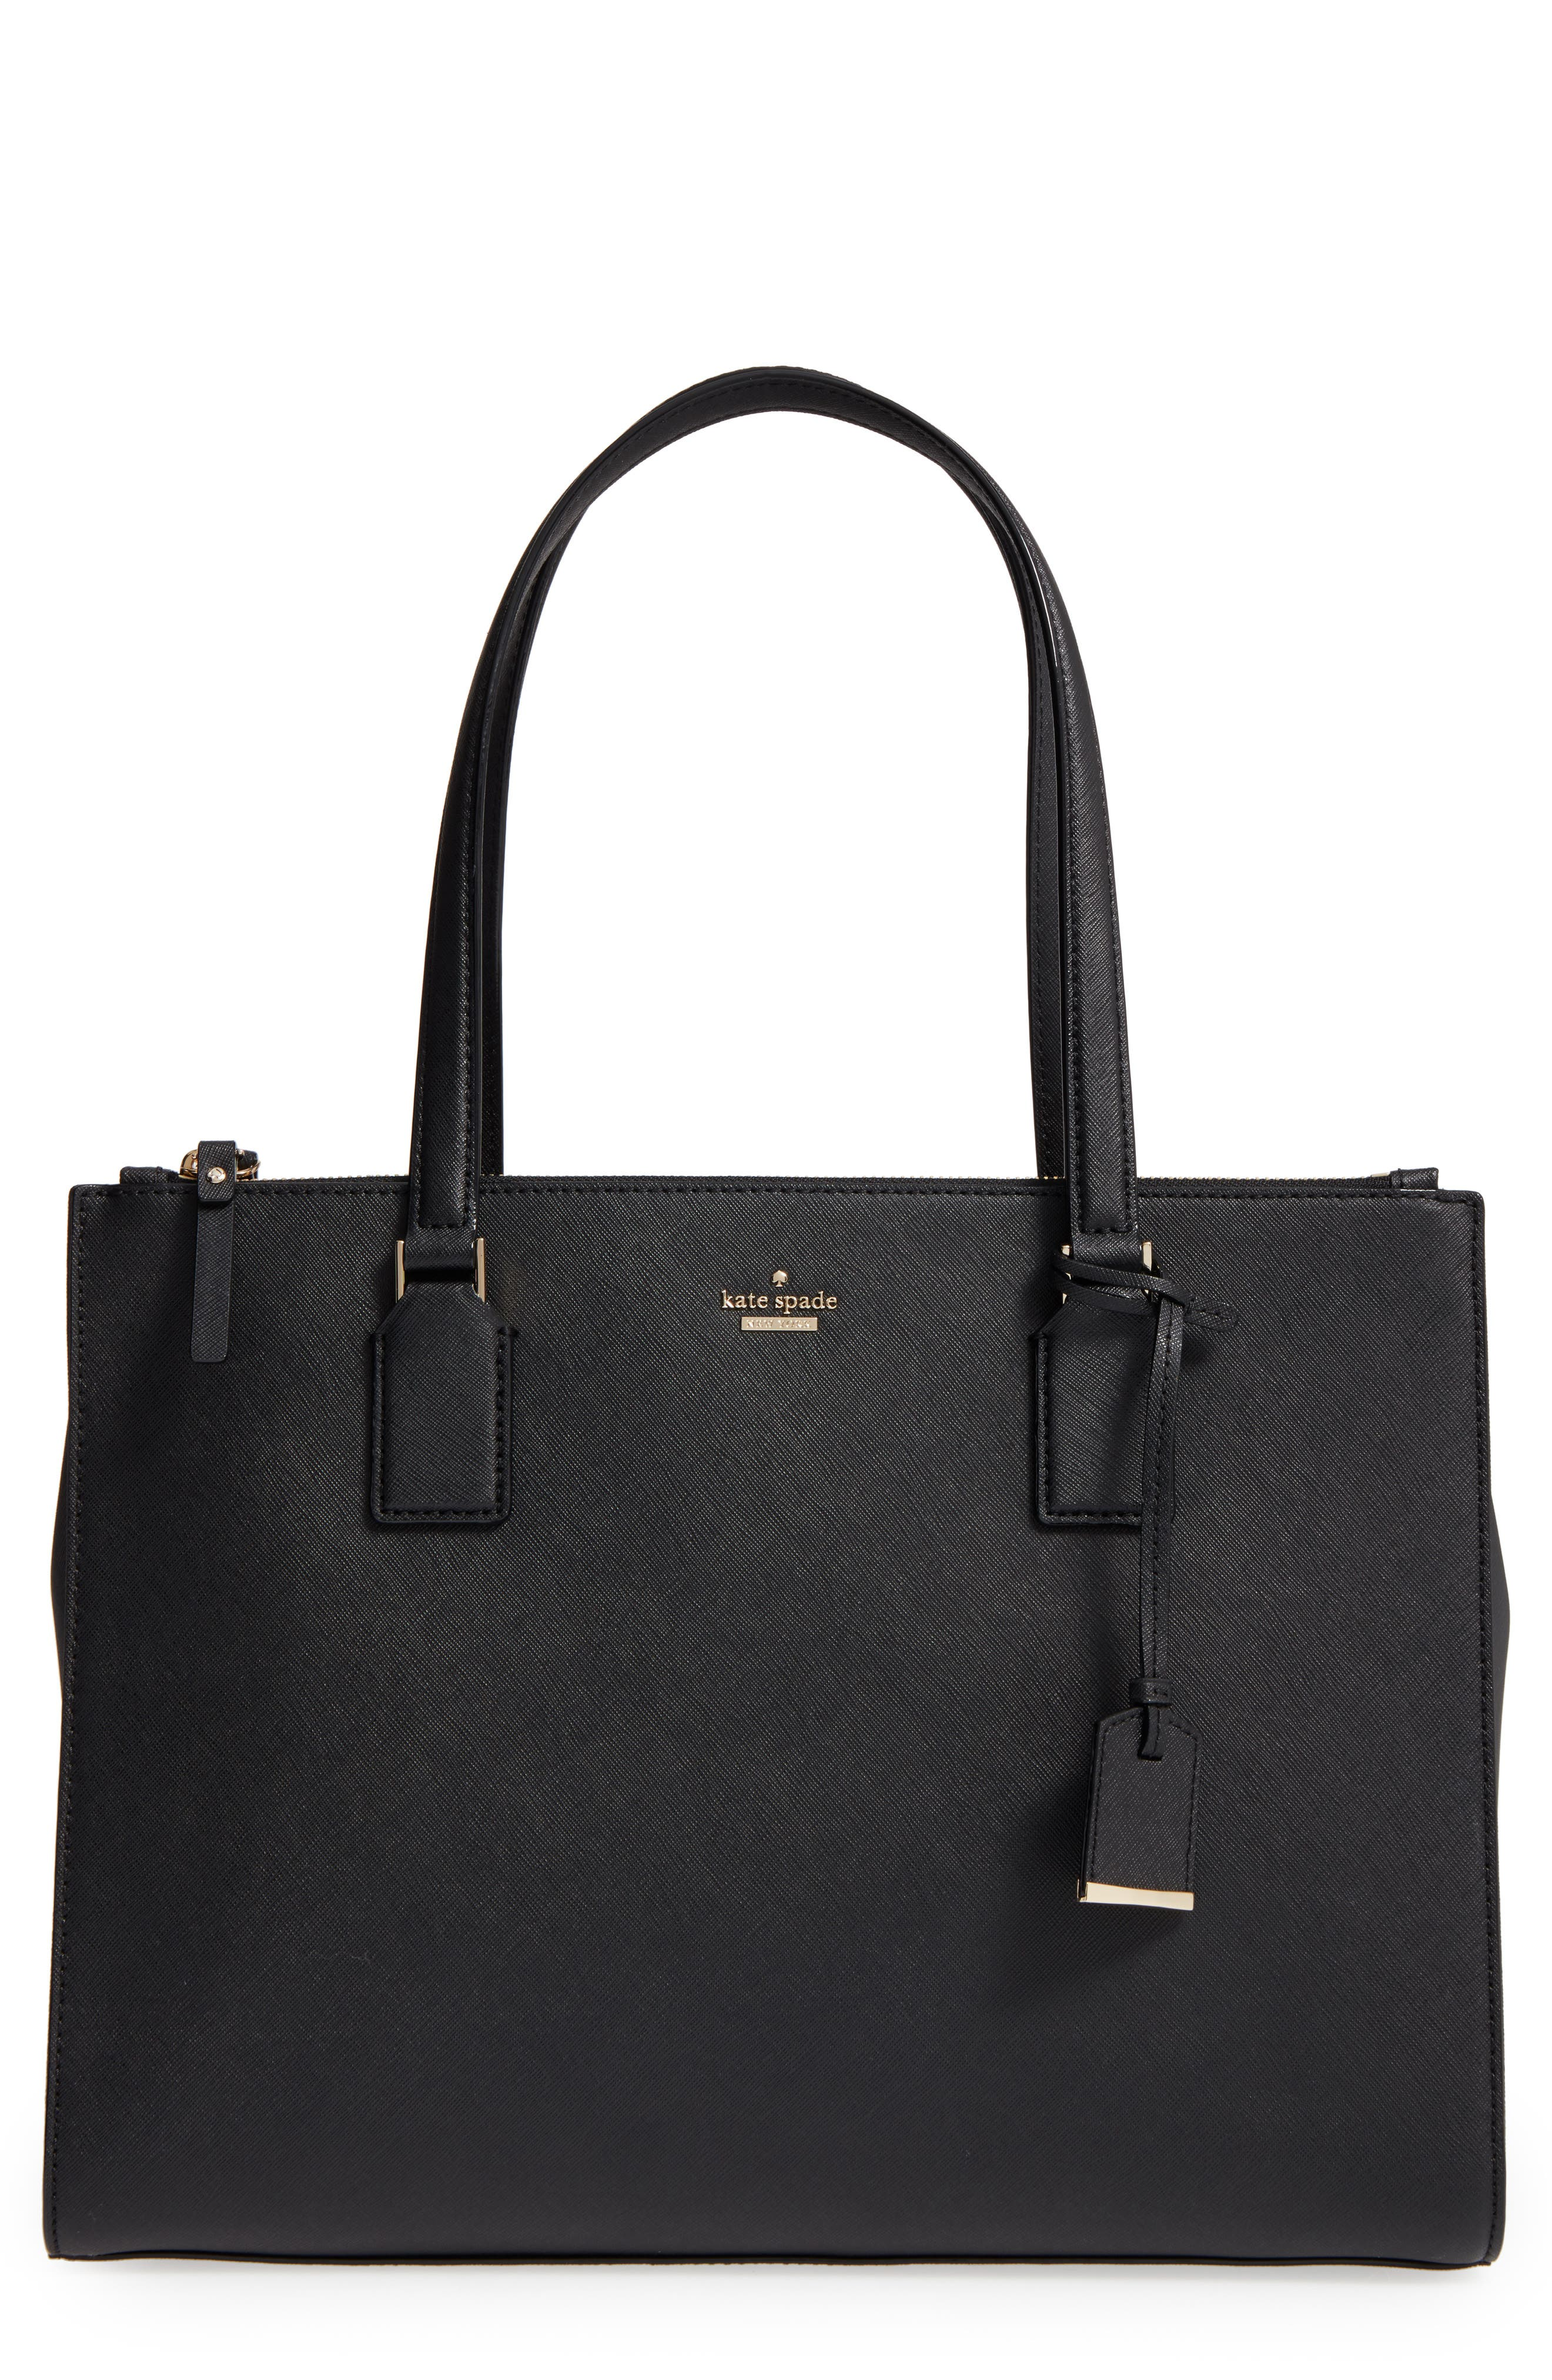 cameron street - jensen leather tote,                             Main thumbnail 1, color,                             001